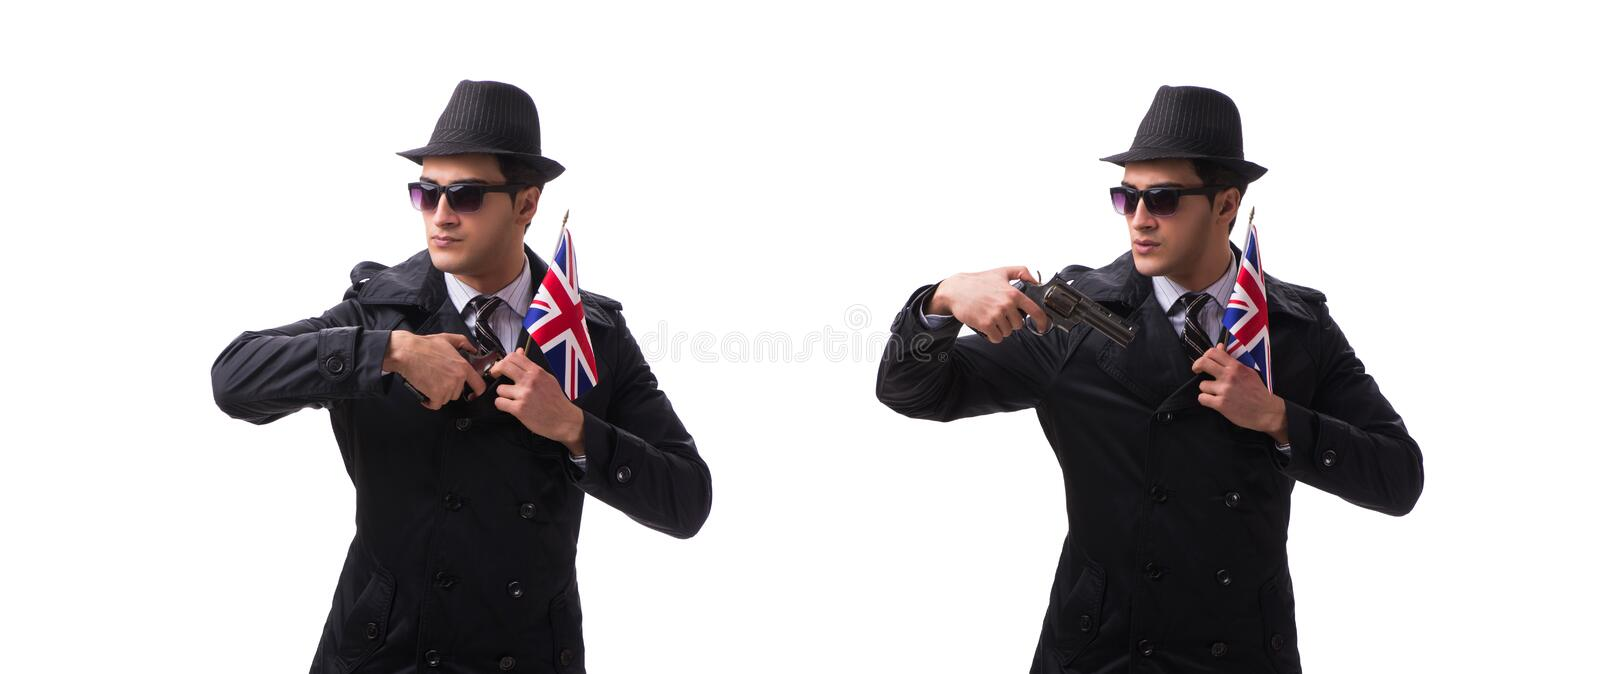 The man spy with handgun and usa flag isolated on white background royalty free stock photos